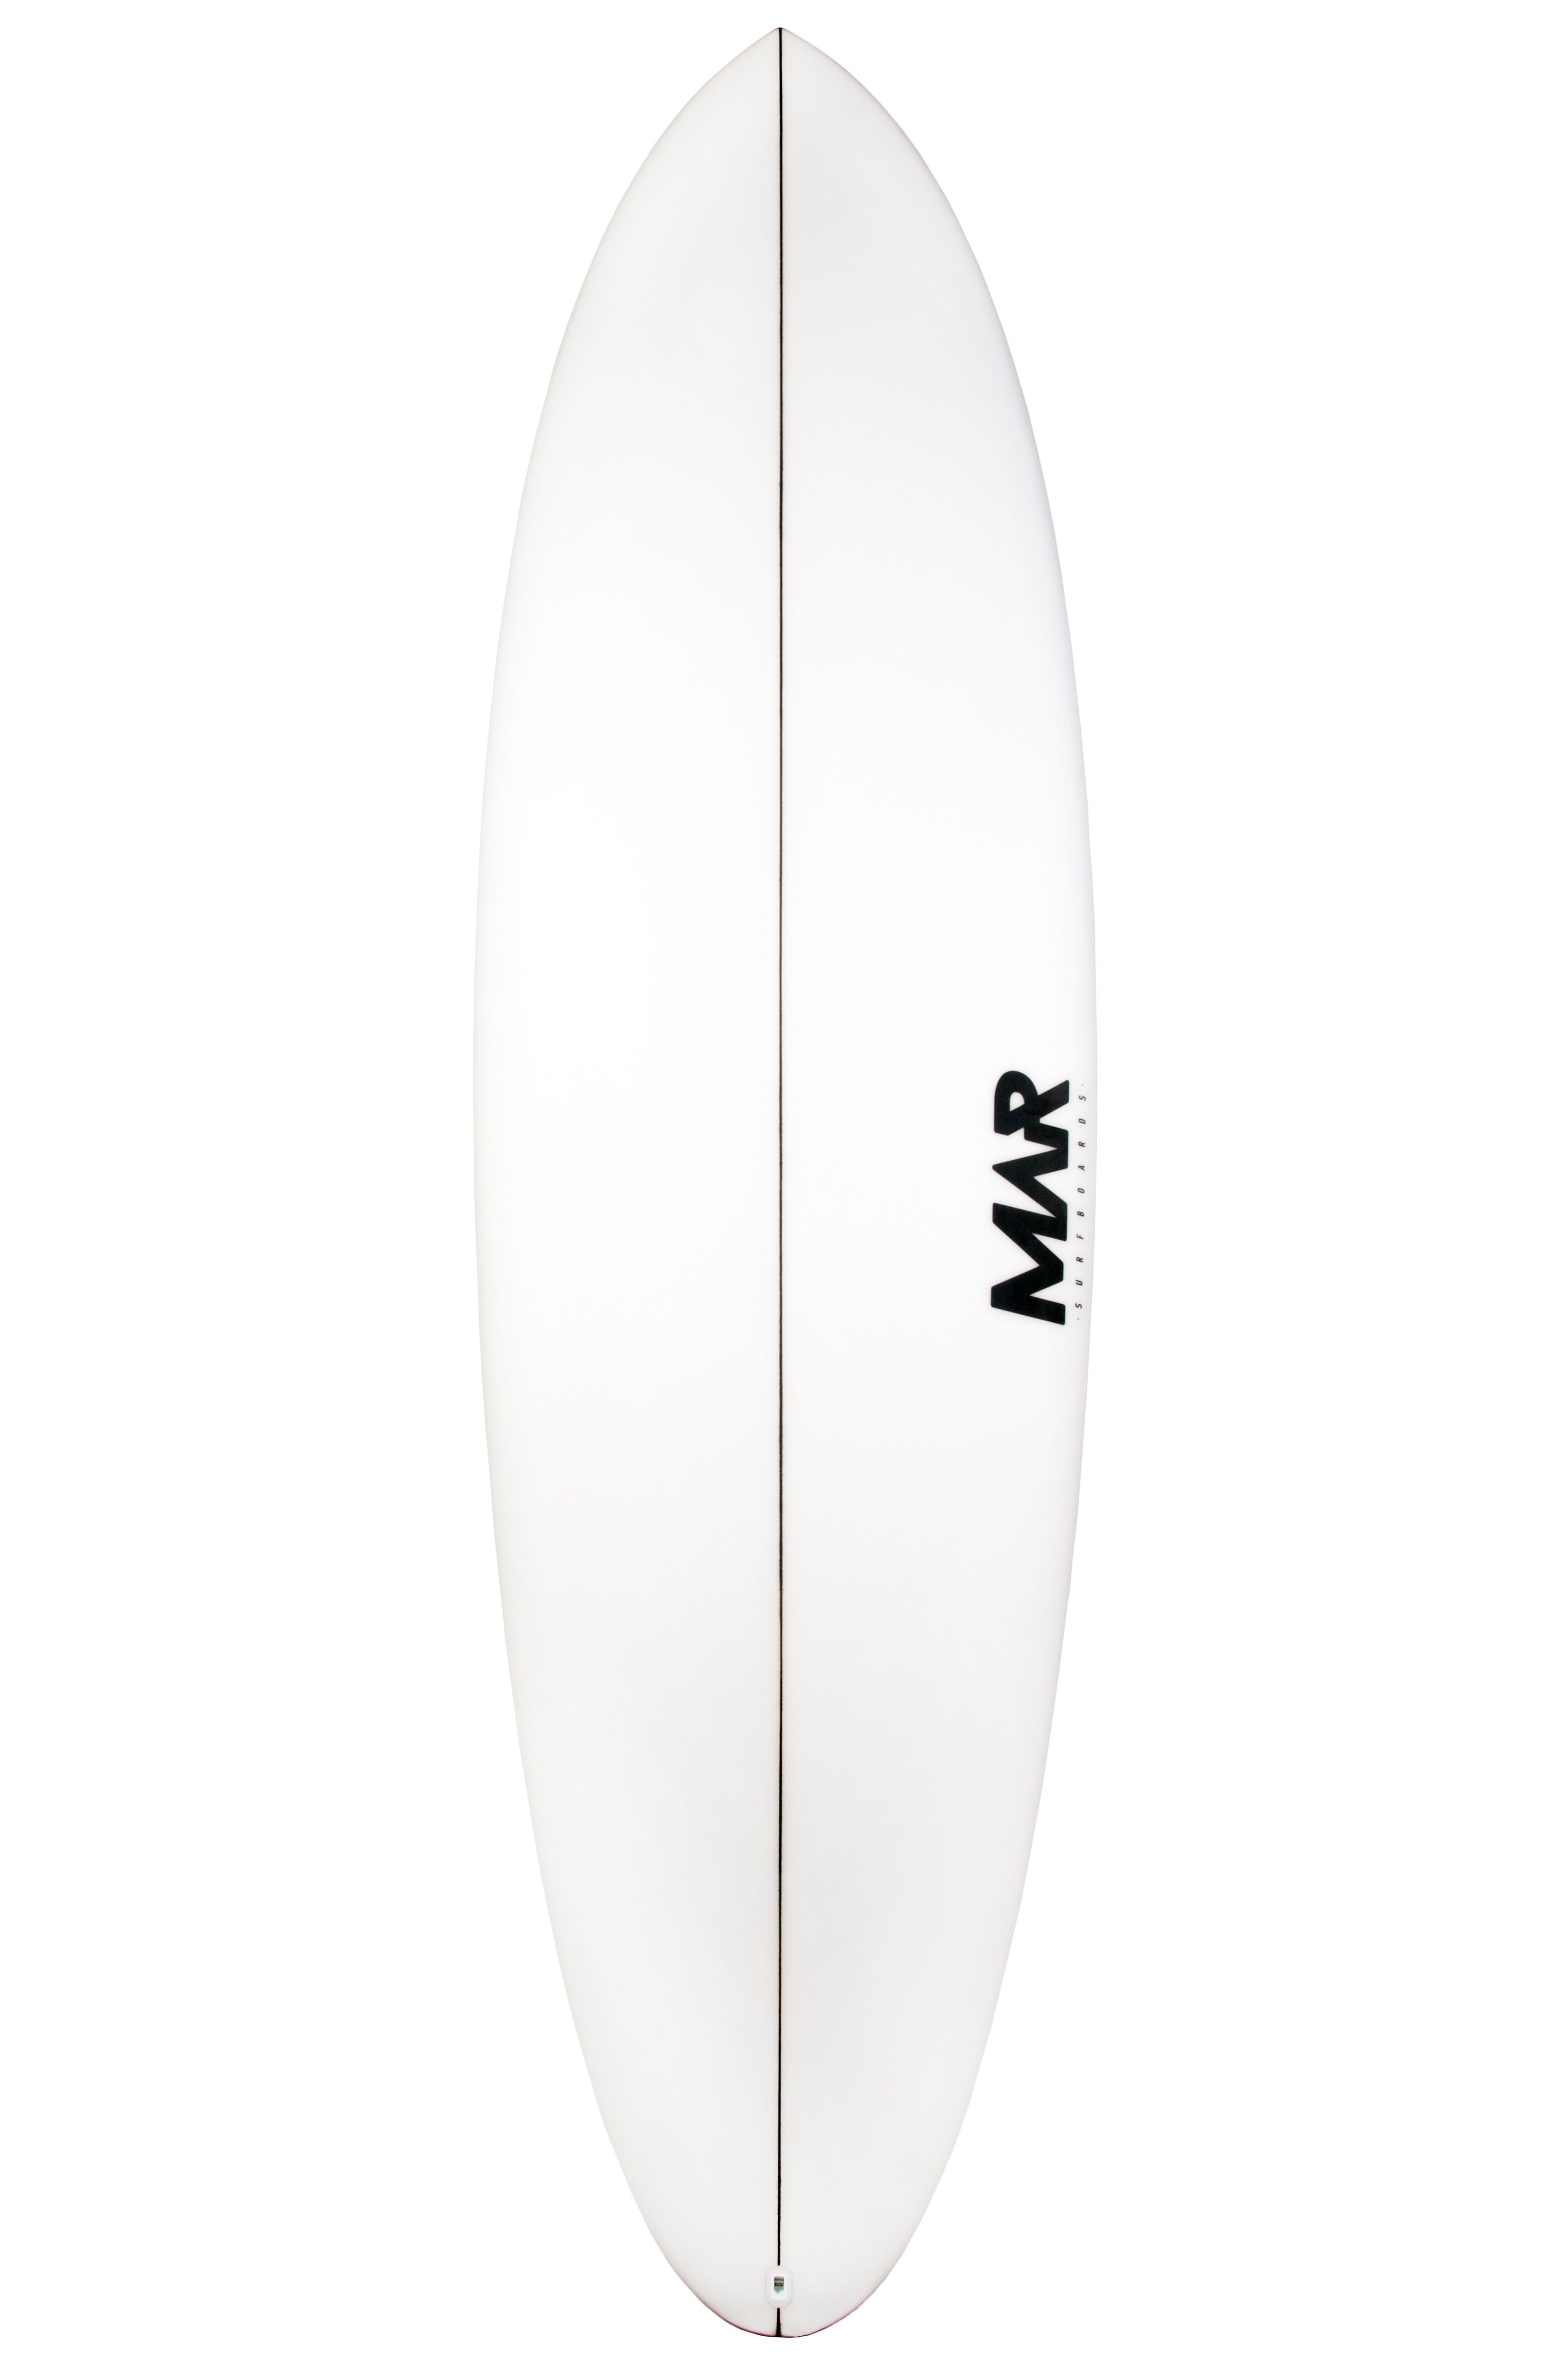 Mar Surf Board 7'0 MAR MID PU Round Pin Tail - White FCS II Multisystem 7ft0